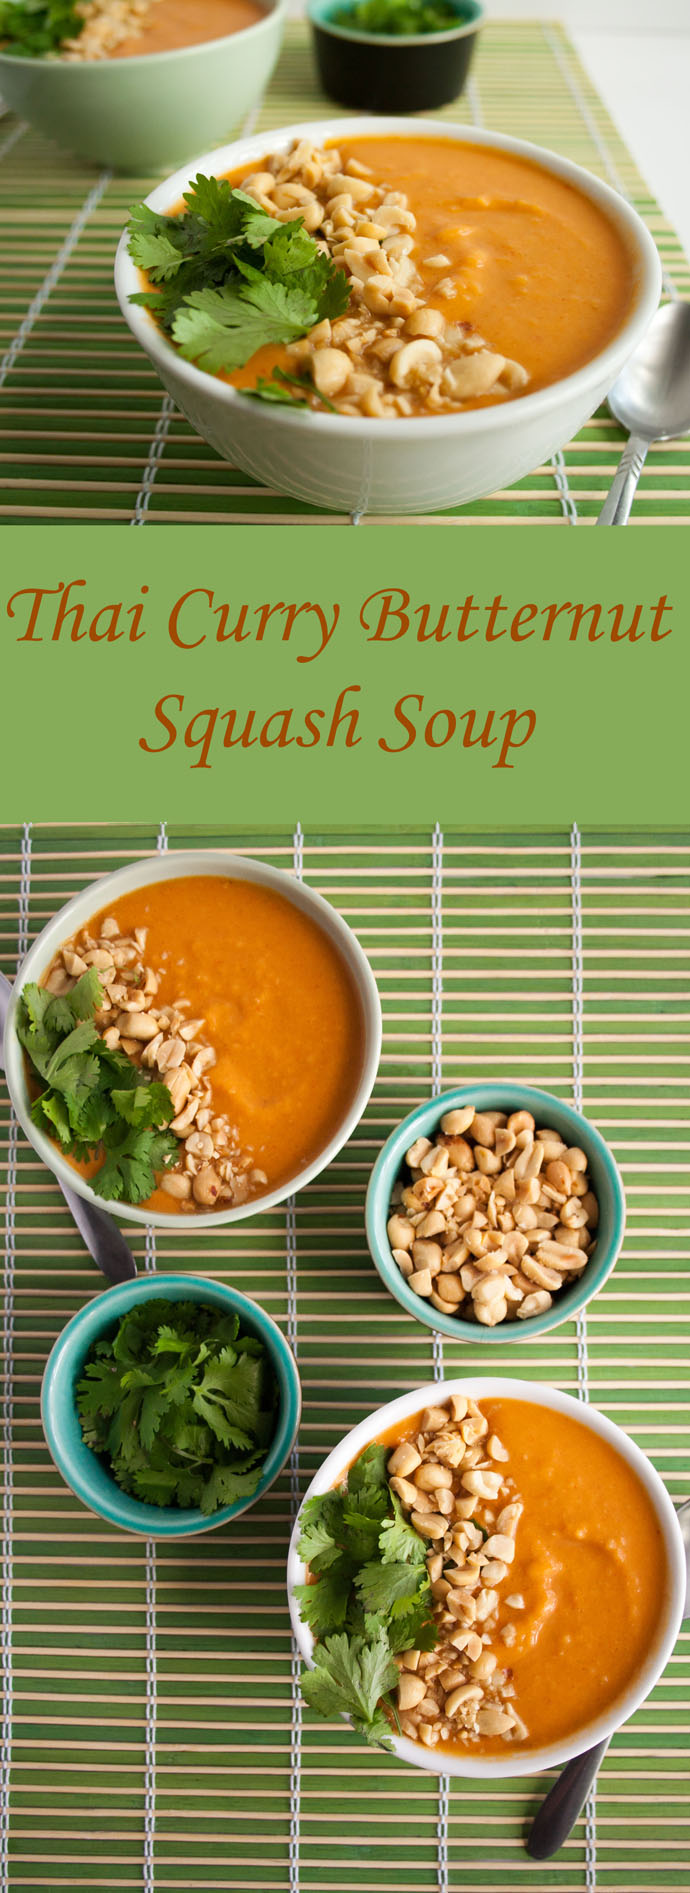 Thai Curry Butternut Squash Soup (vegan, gluten free) - This comforting curry soup is a perfect meal to warm you up on a cool day. It is rich and satisfying!